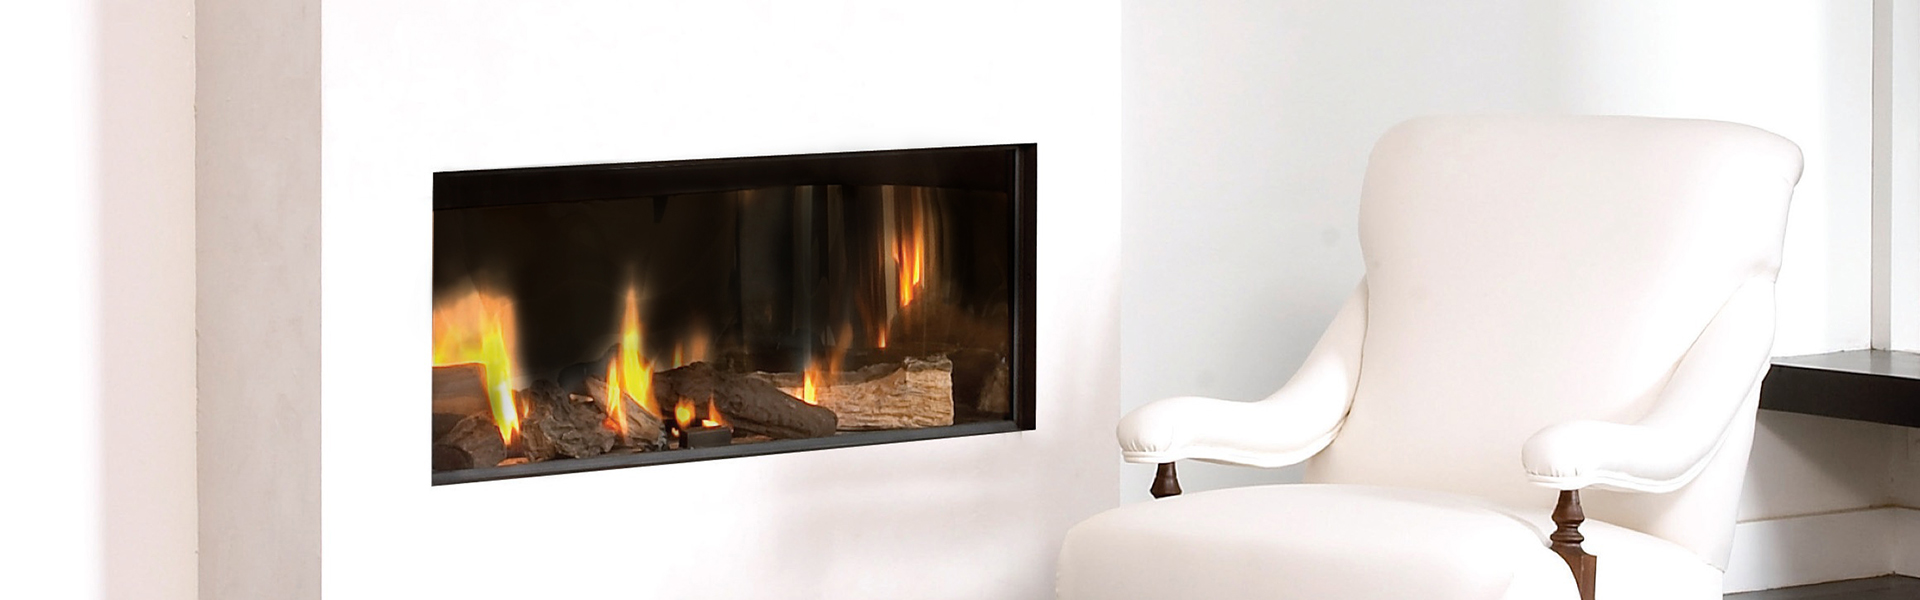 FRONT FACING 90H FIREPLACE